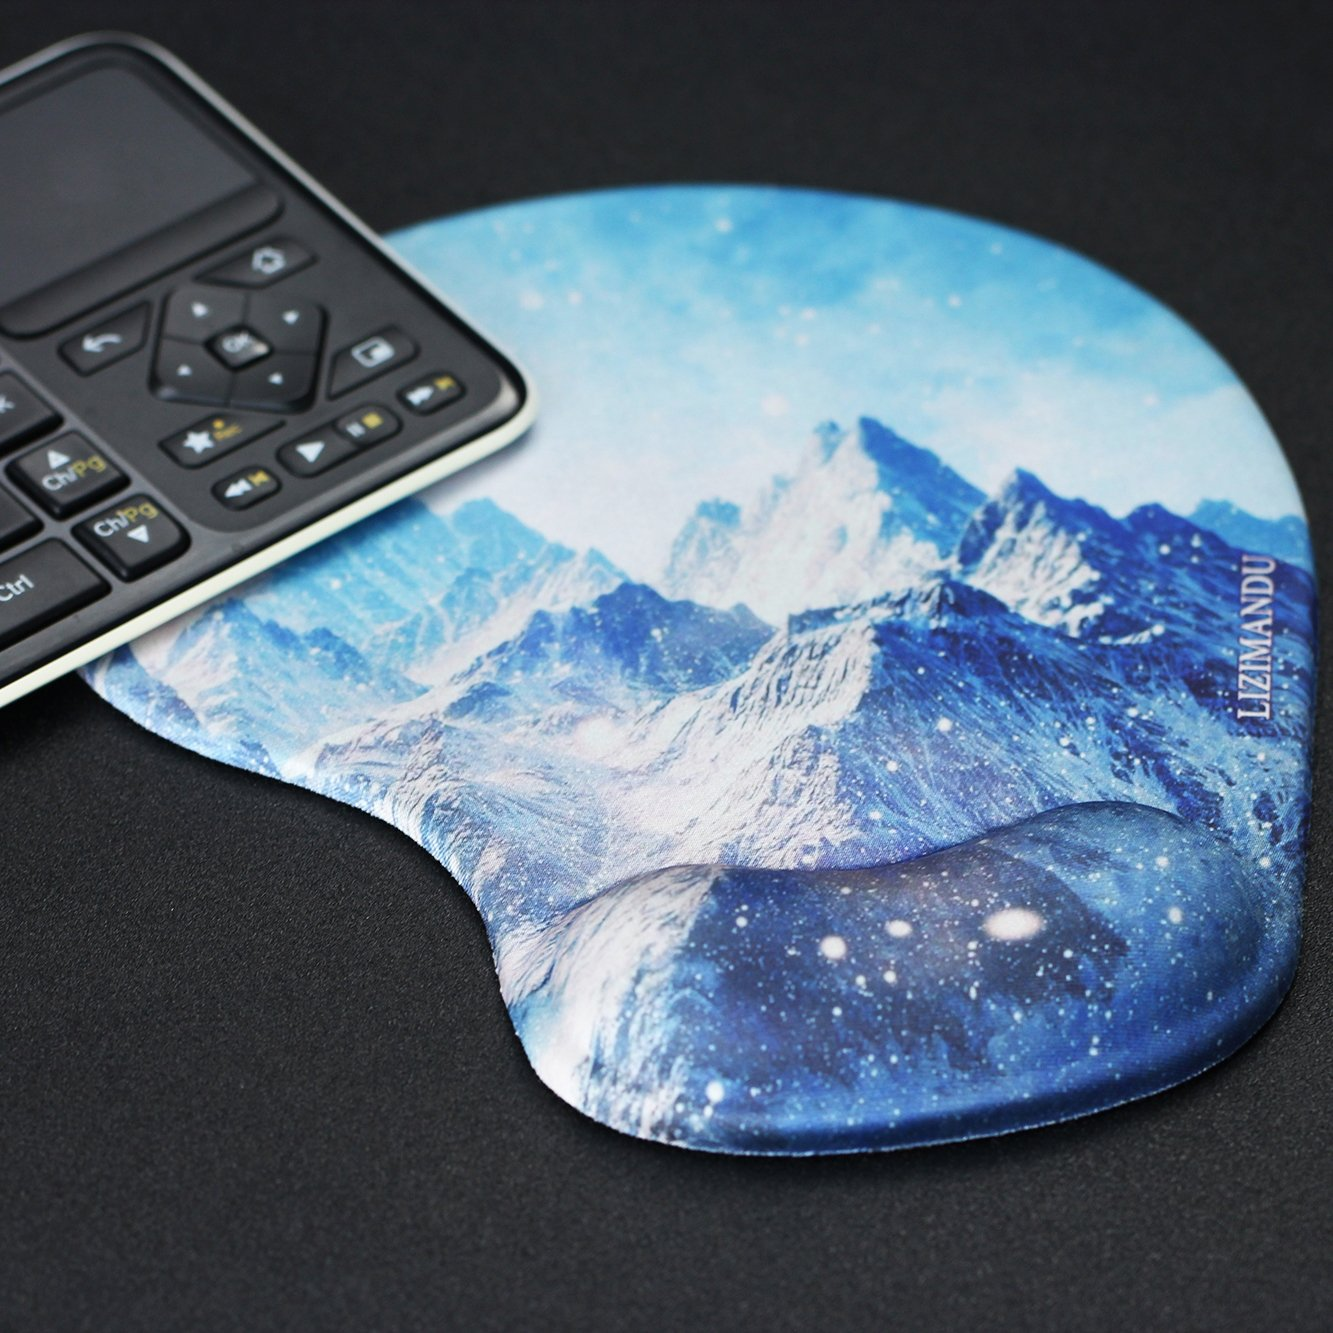 Lizimandu Non Slip Mouse Pad Wrist Rest For Office, Computer, Laptop & Mac - Durable & Comfortable & Lightweight For Easy Typing & Pain Relief-Ergonomic Support(Snow Mountain) by lizimandu (Image #6)